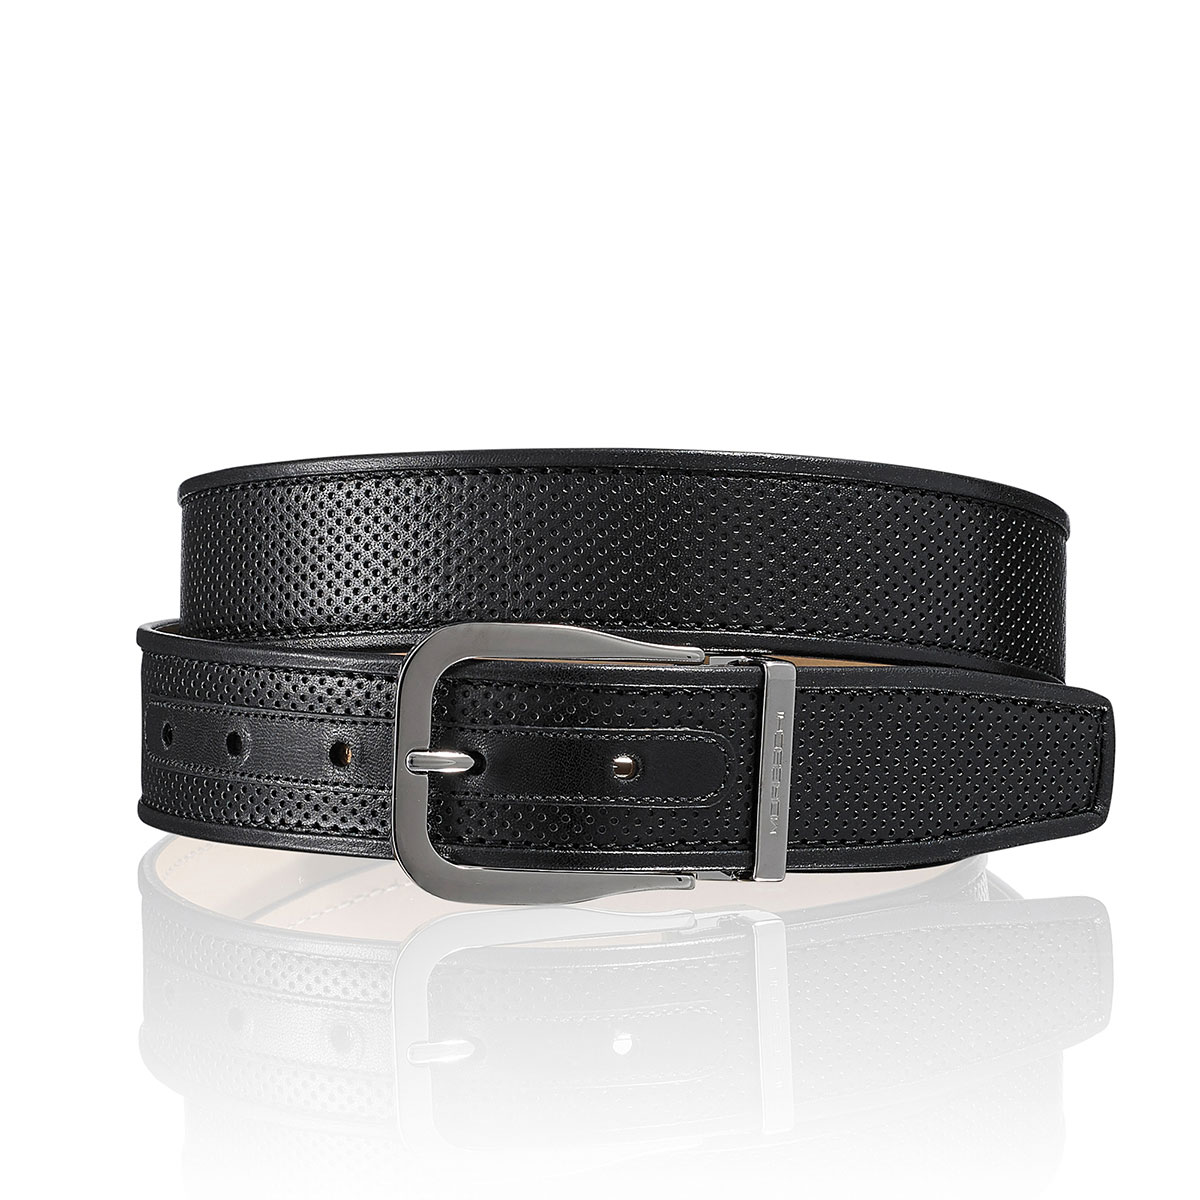 Russell And Bromley PERFECTION Perforated Belt